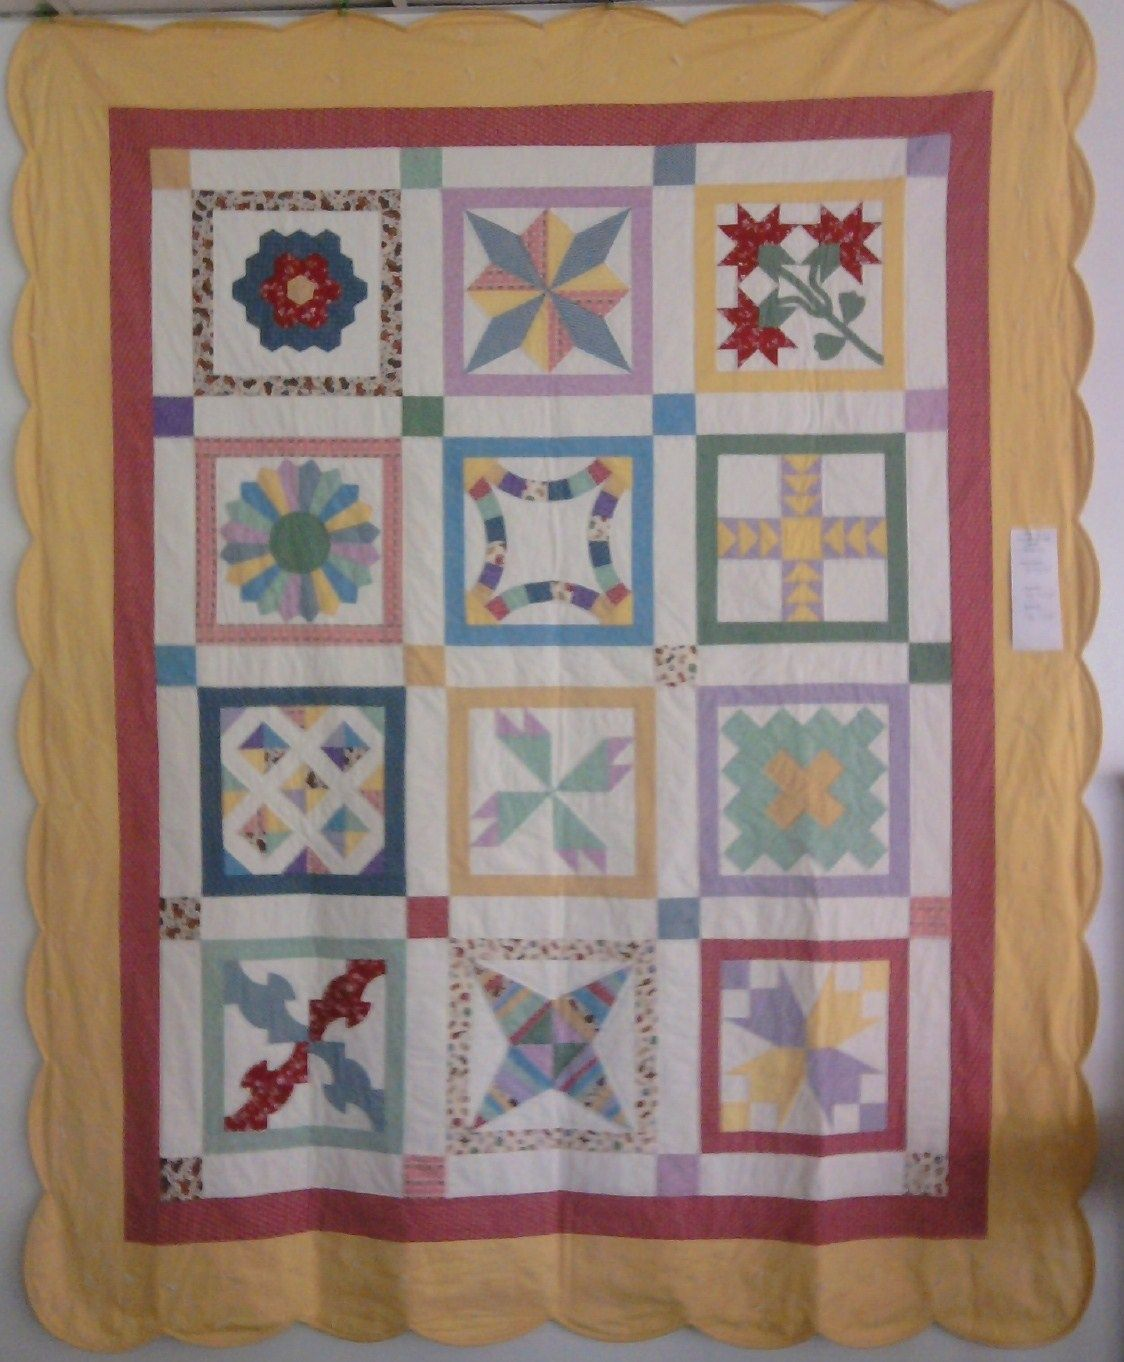 Pattern from Egg Money Quilts by Eleanor Burns | Quilting ... : egg money quilts by eleanor burns - Adamdwight.com